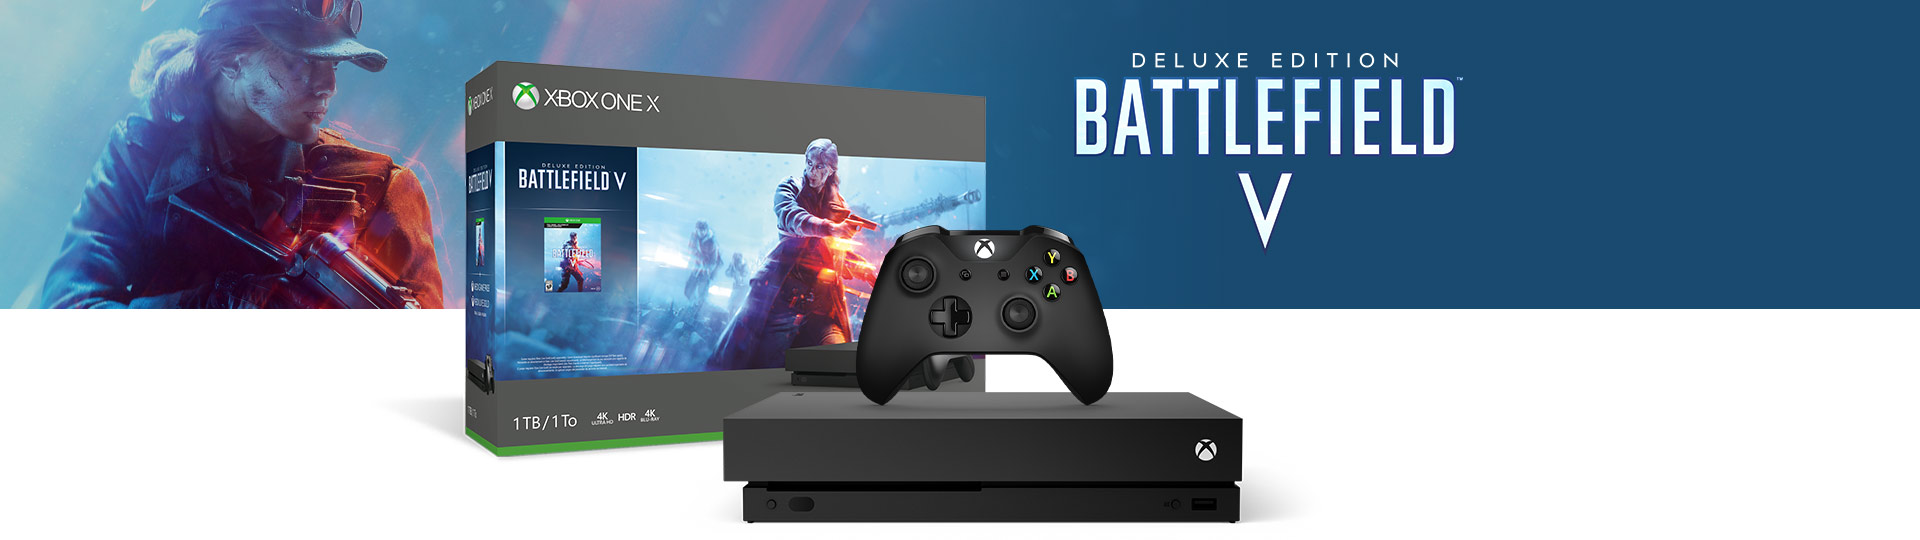 Xbox One X and Controller next to the Xbox One X Battlefield V 1 terabyte product box